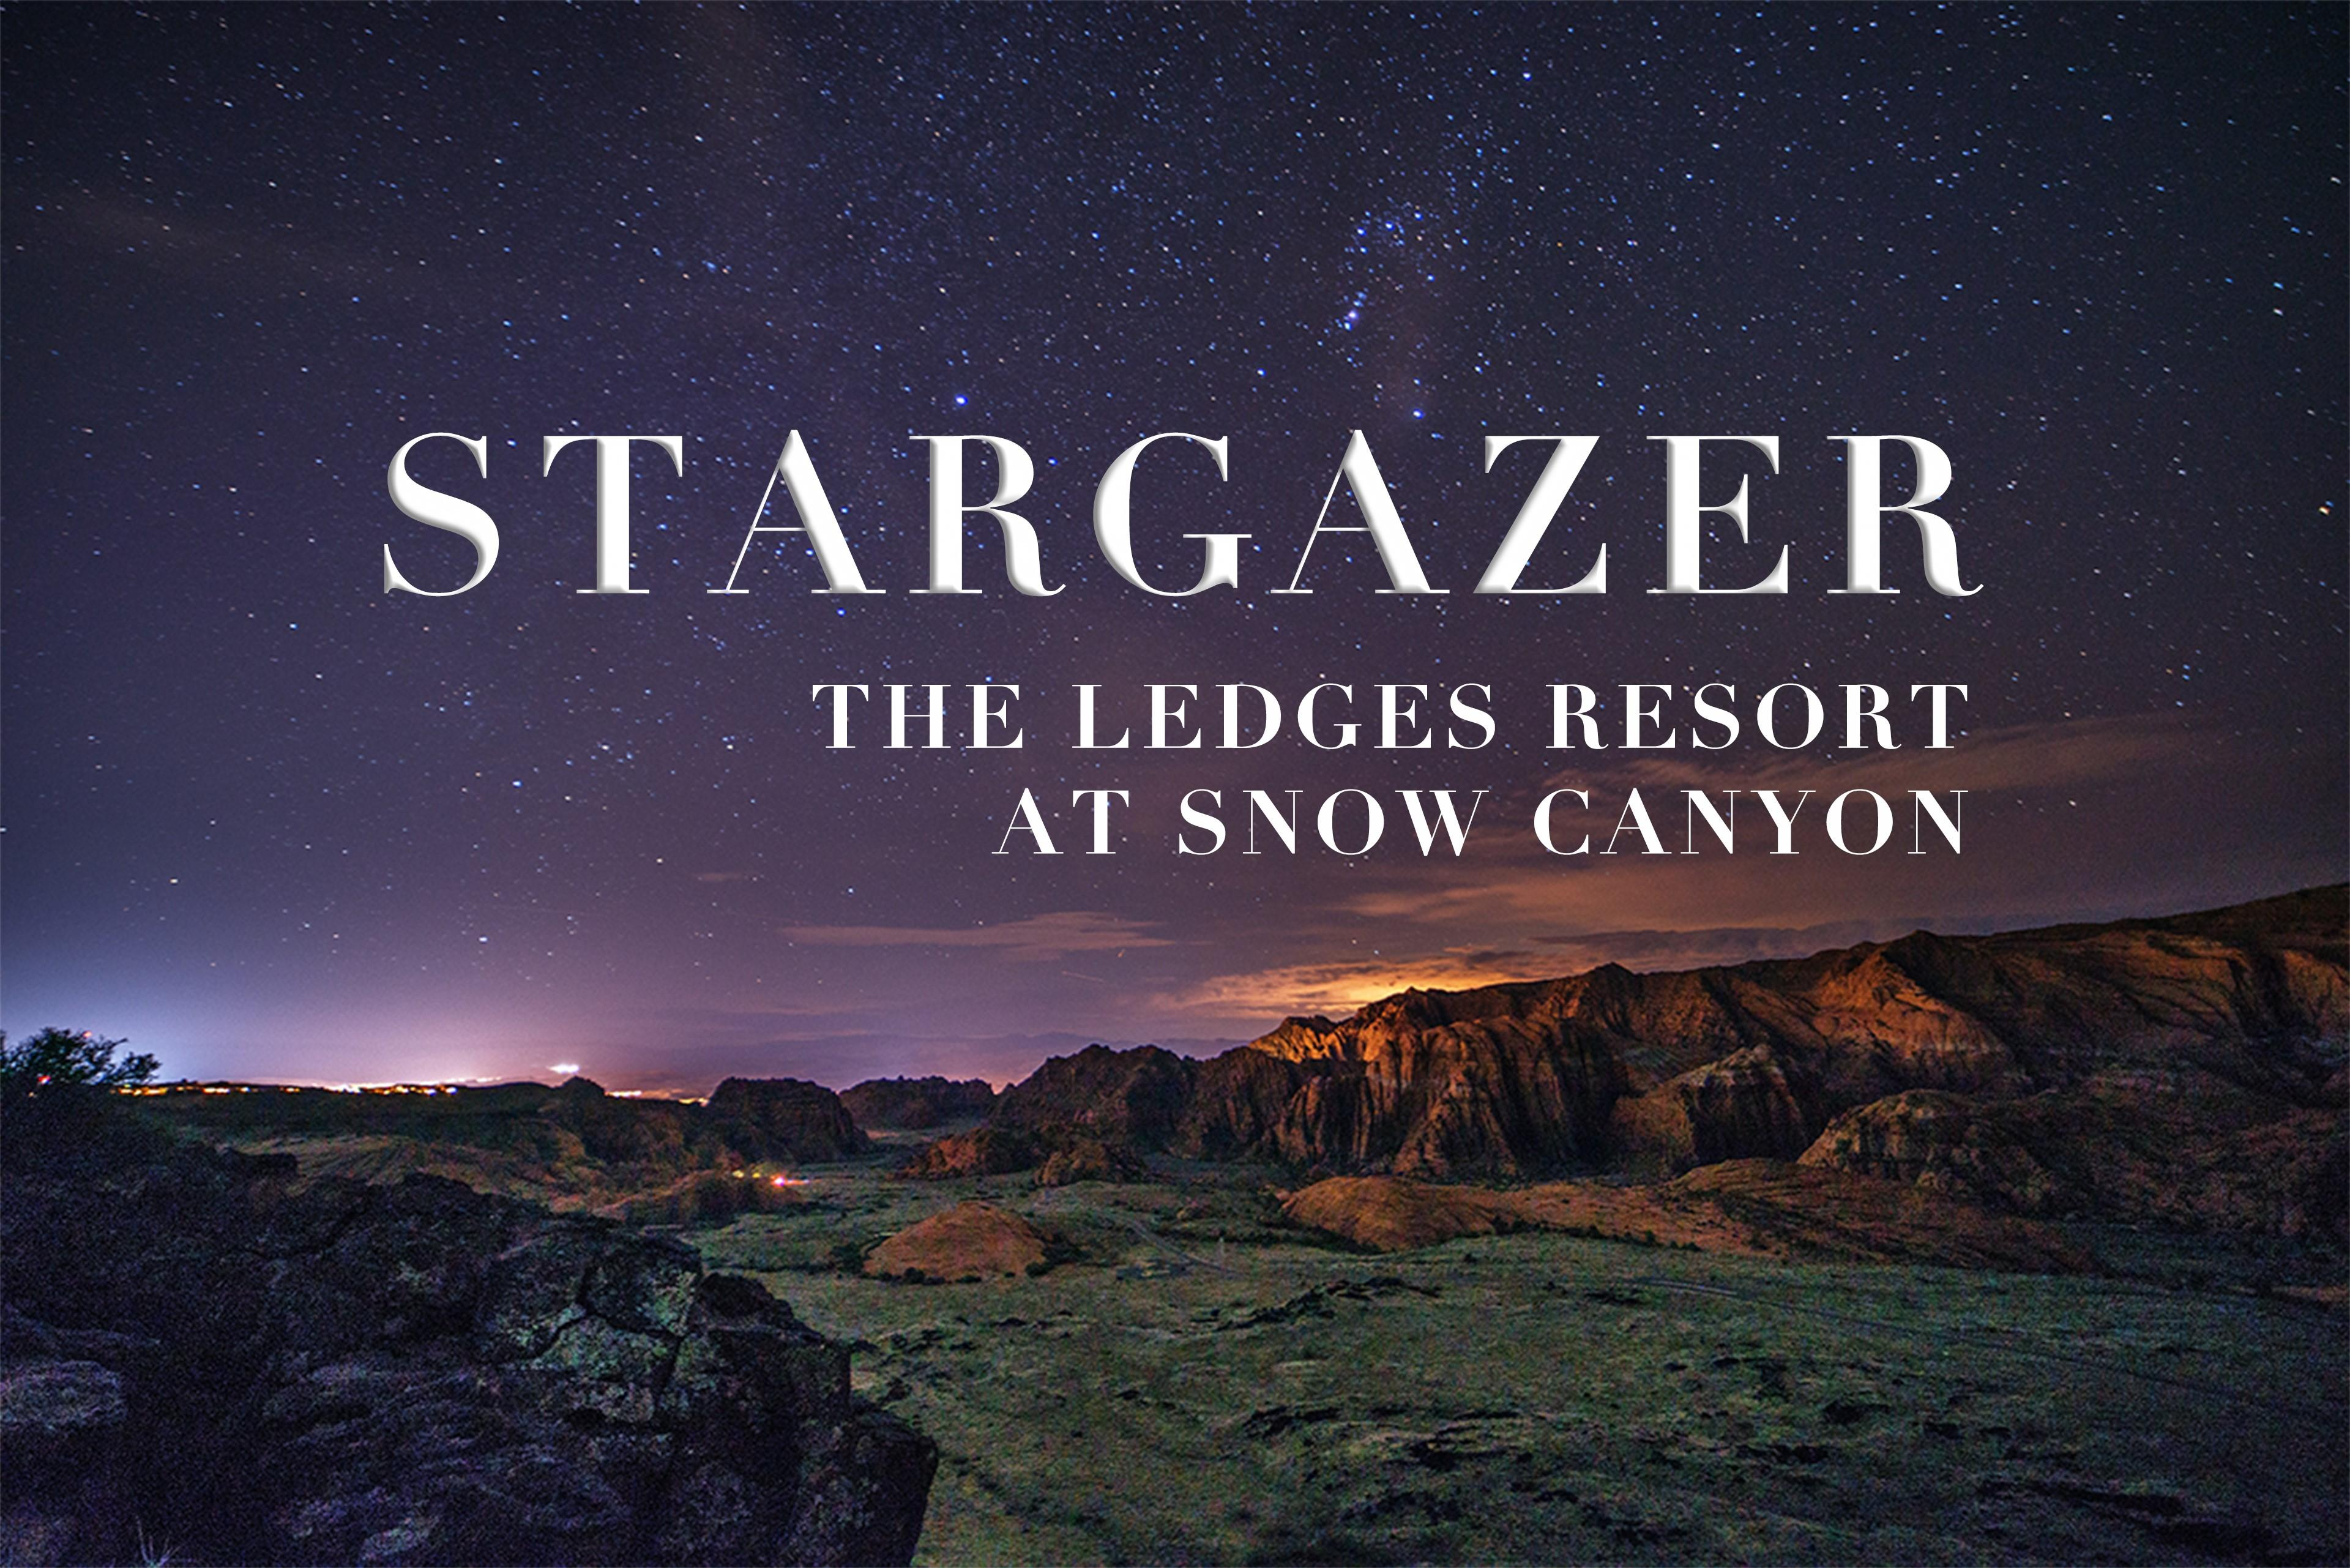 We hope you enjoy the beautiful night skies and scenic landscapes while staying at our stunning home.